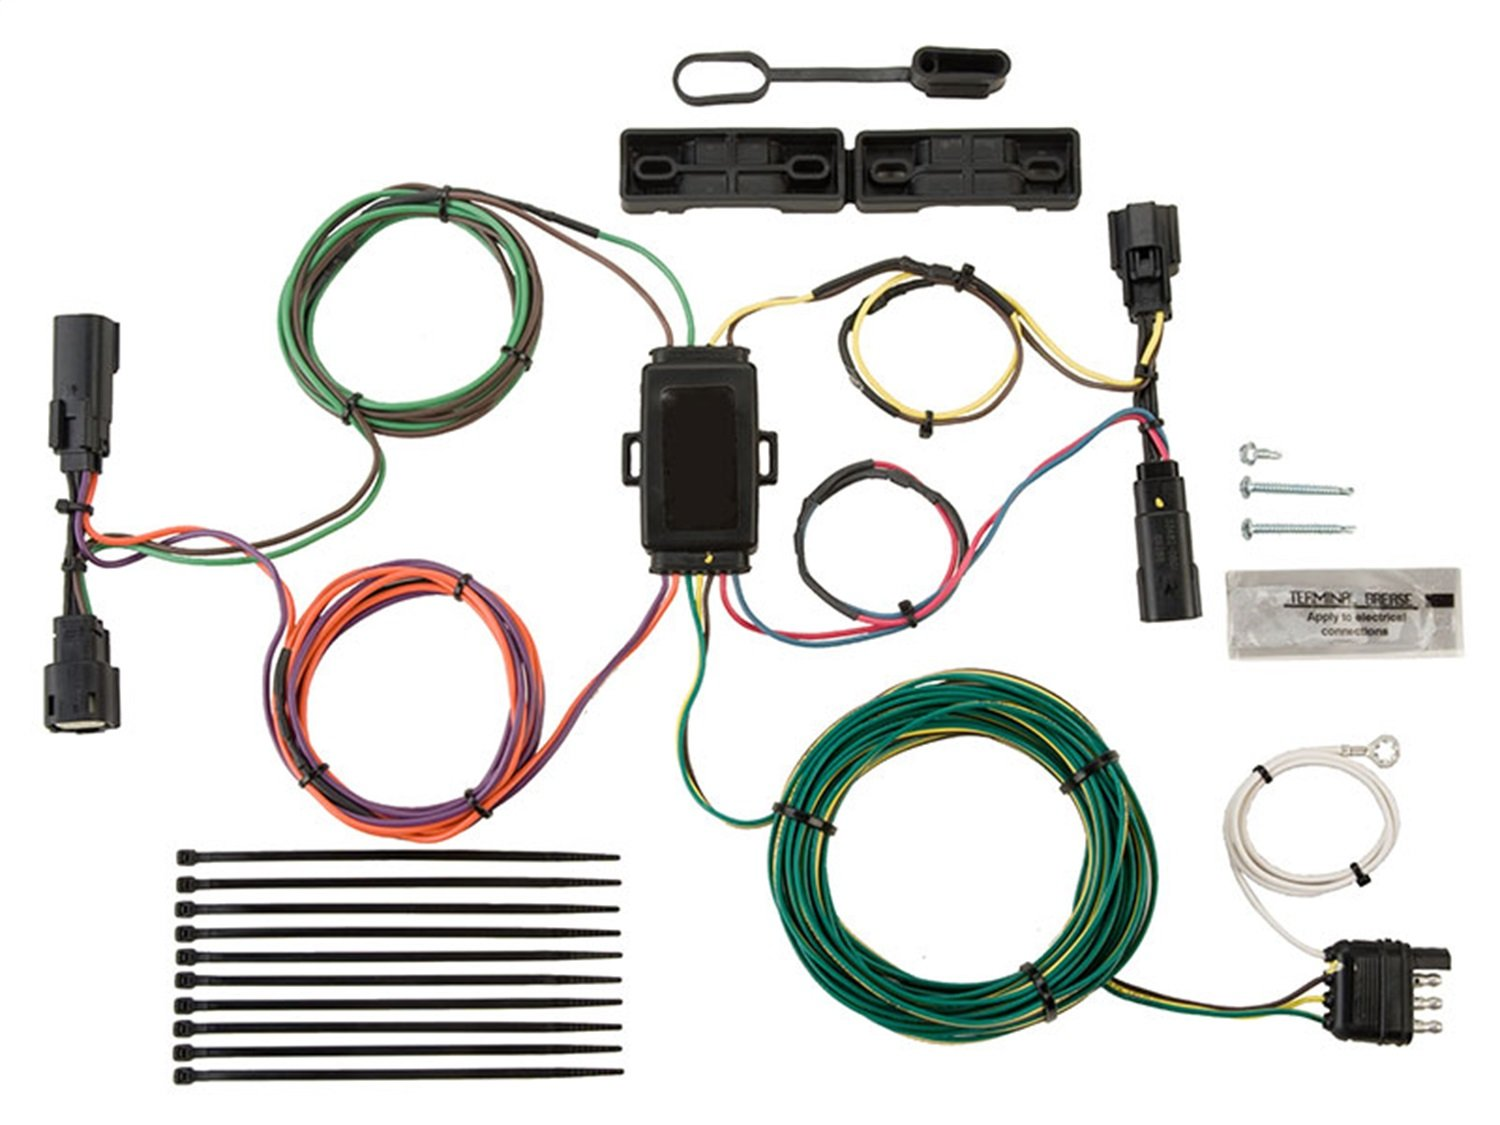 Blue Ox BX88280 EZ Light Wiring Harness Kit for Ford Escape/Edge